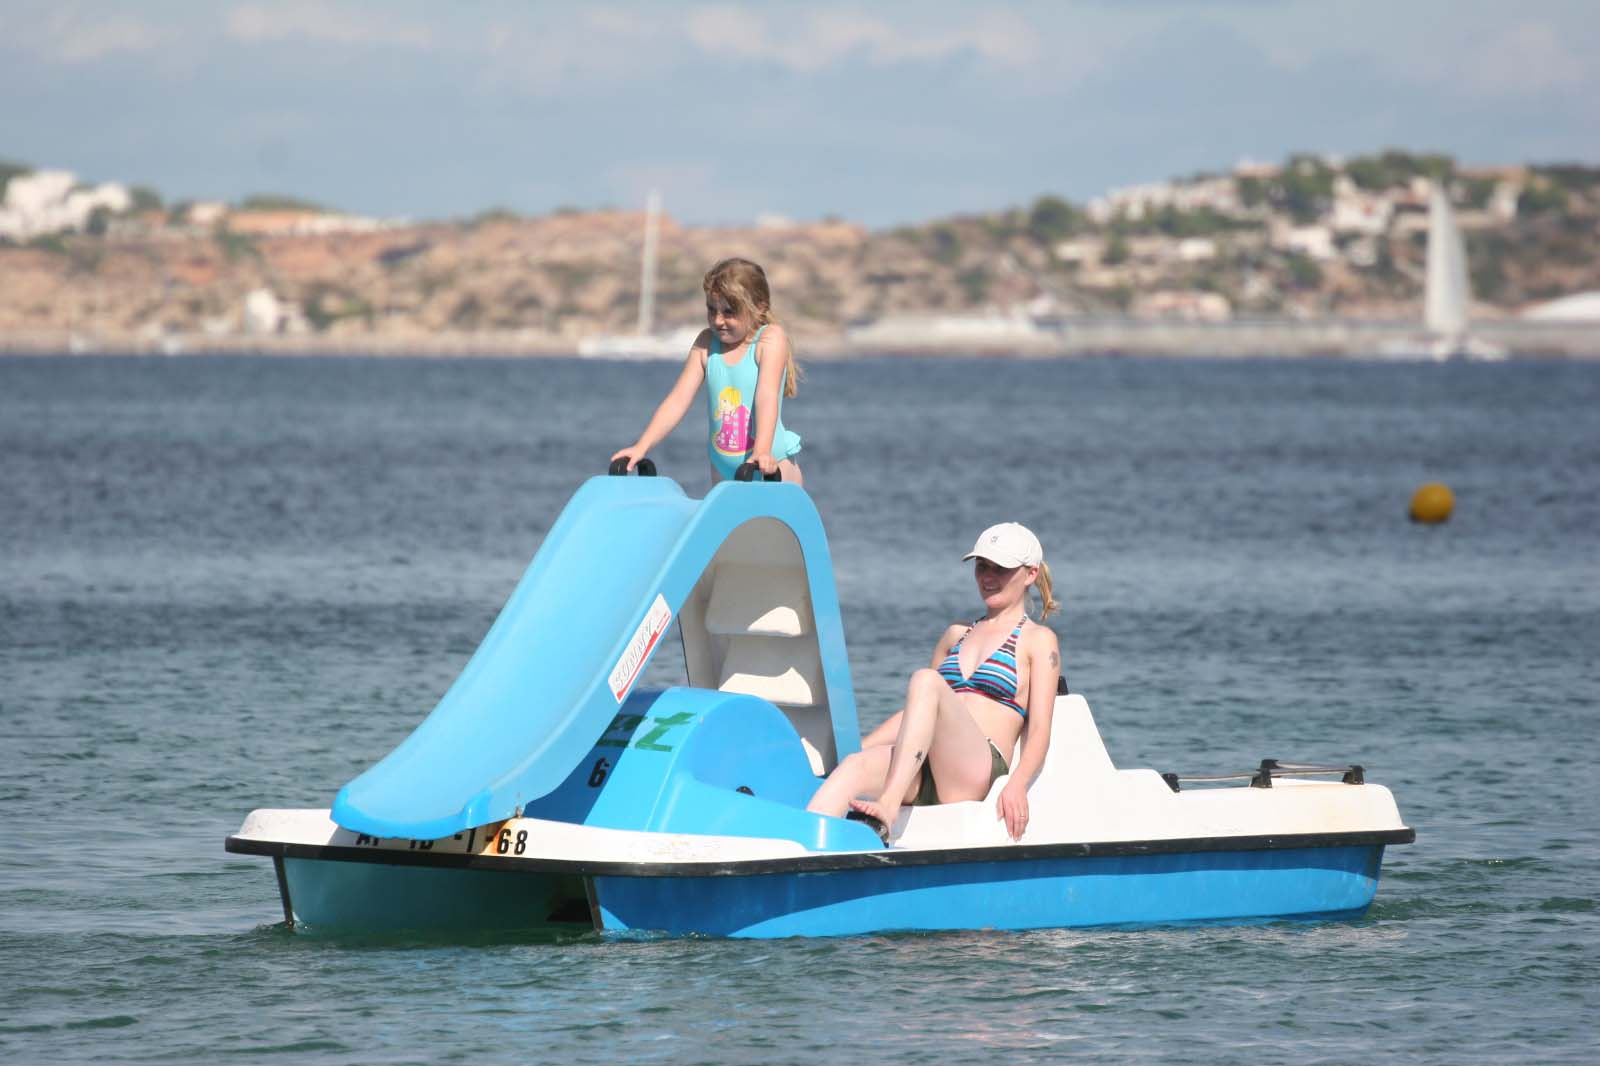 Sharm el Sheikh pedalo ride